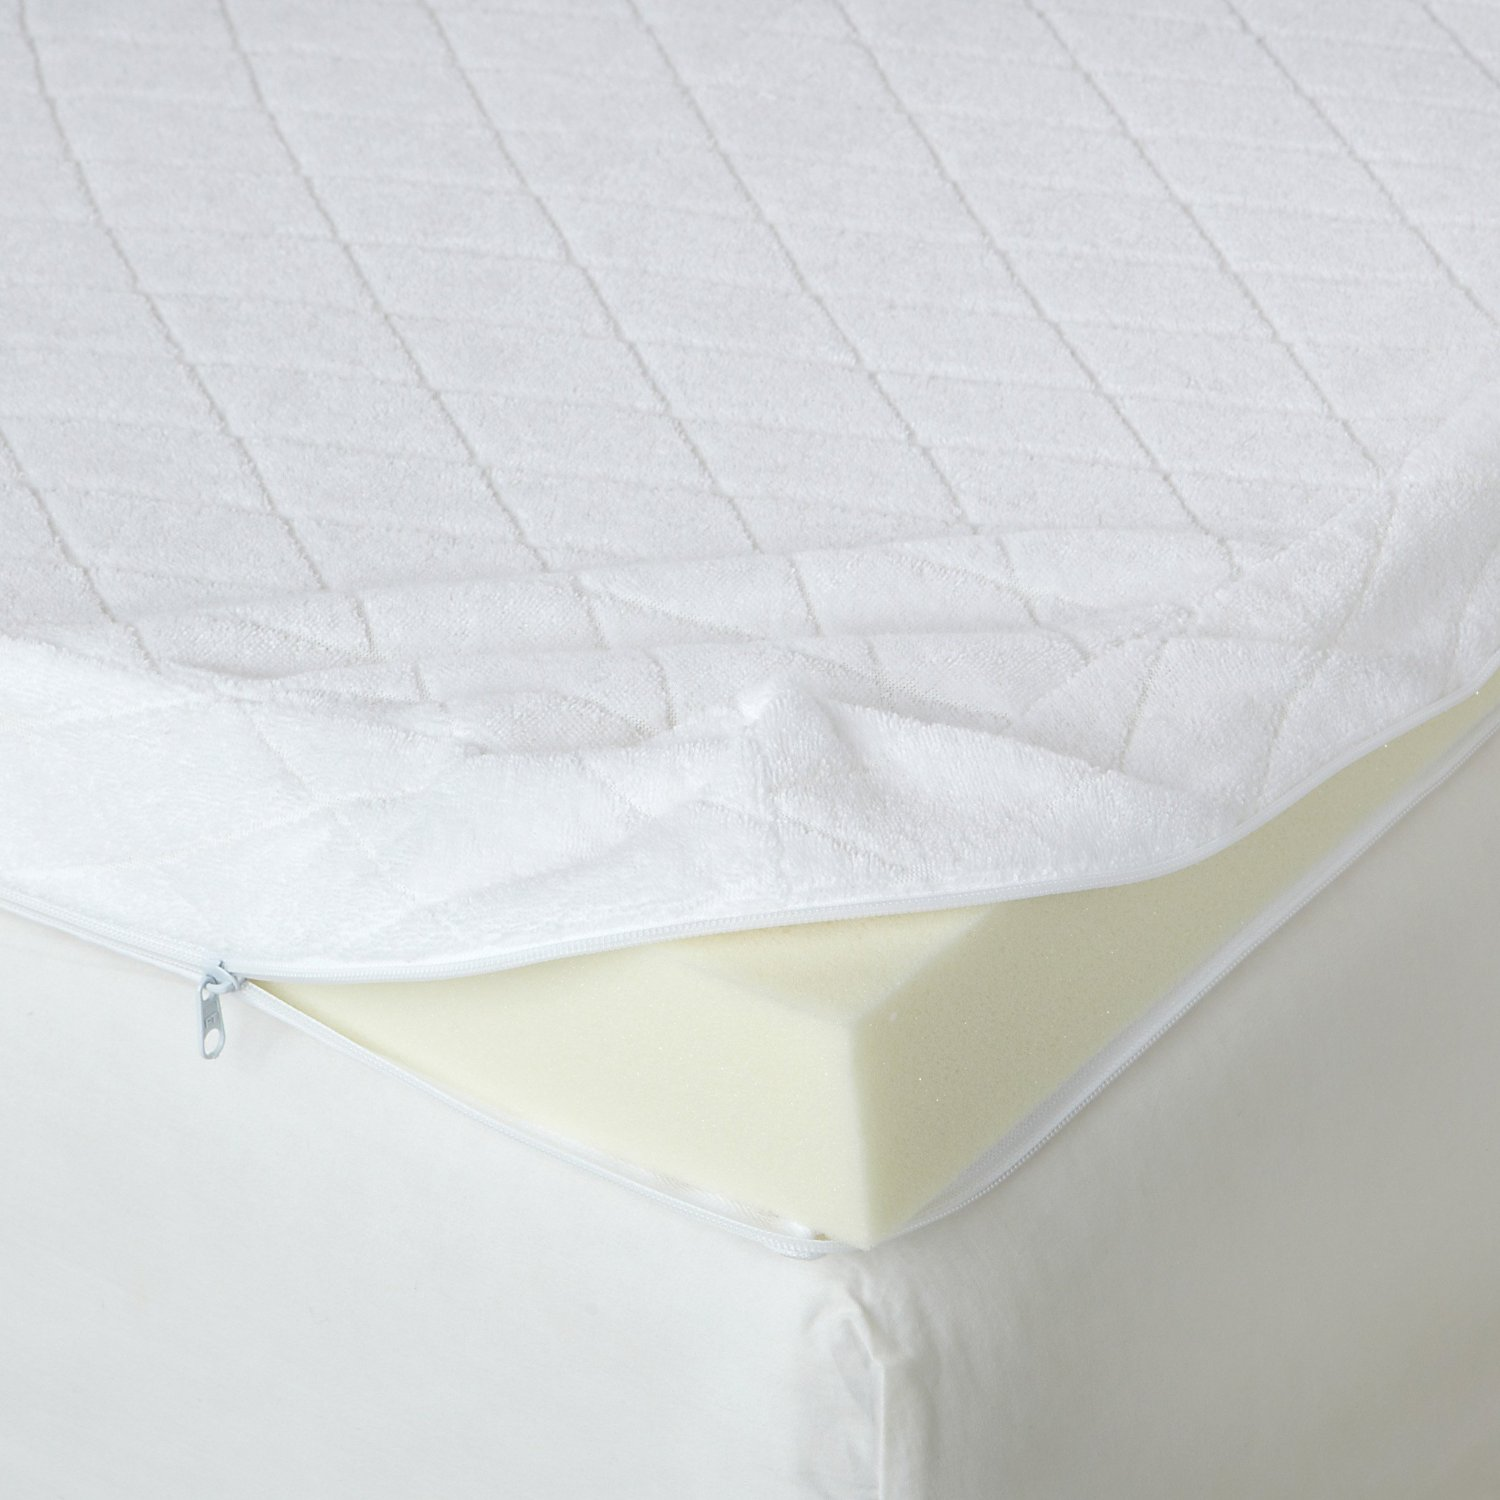 zippered mattress topper cover Memory Foam Mattress: Isotonic Memory Foam Mattress Topper zippered mattress topper cover